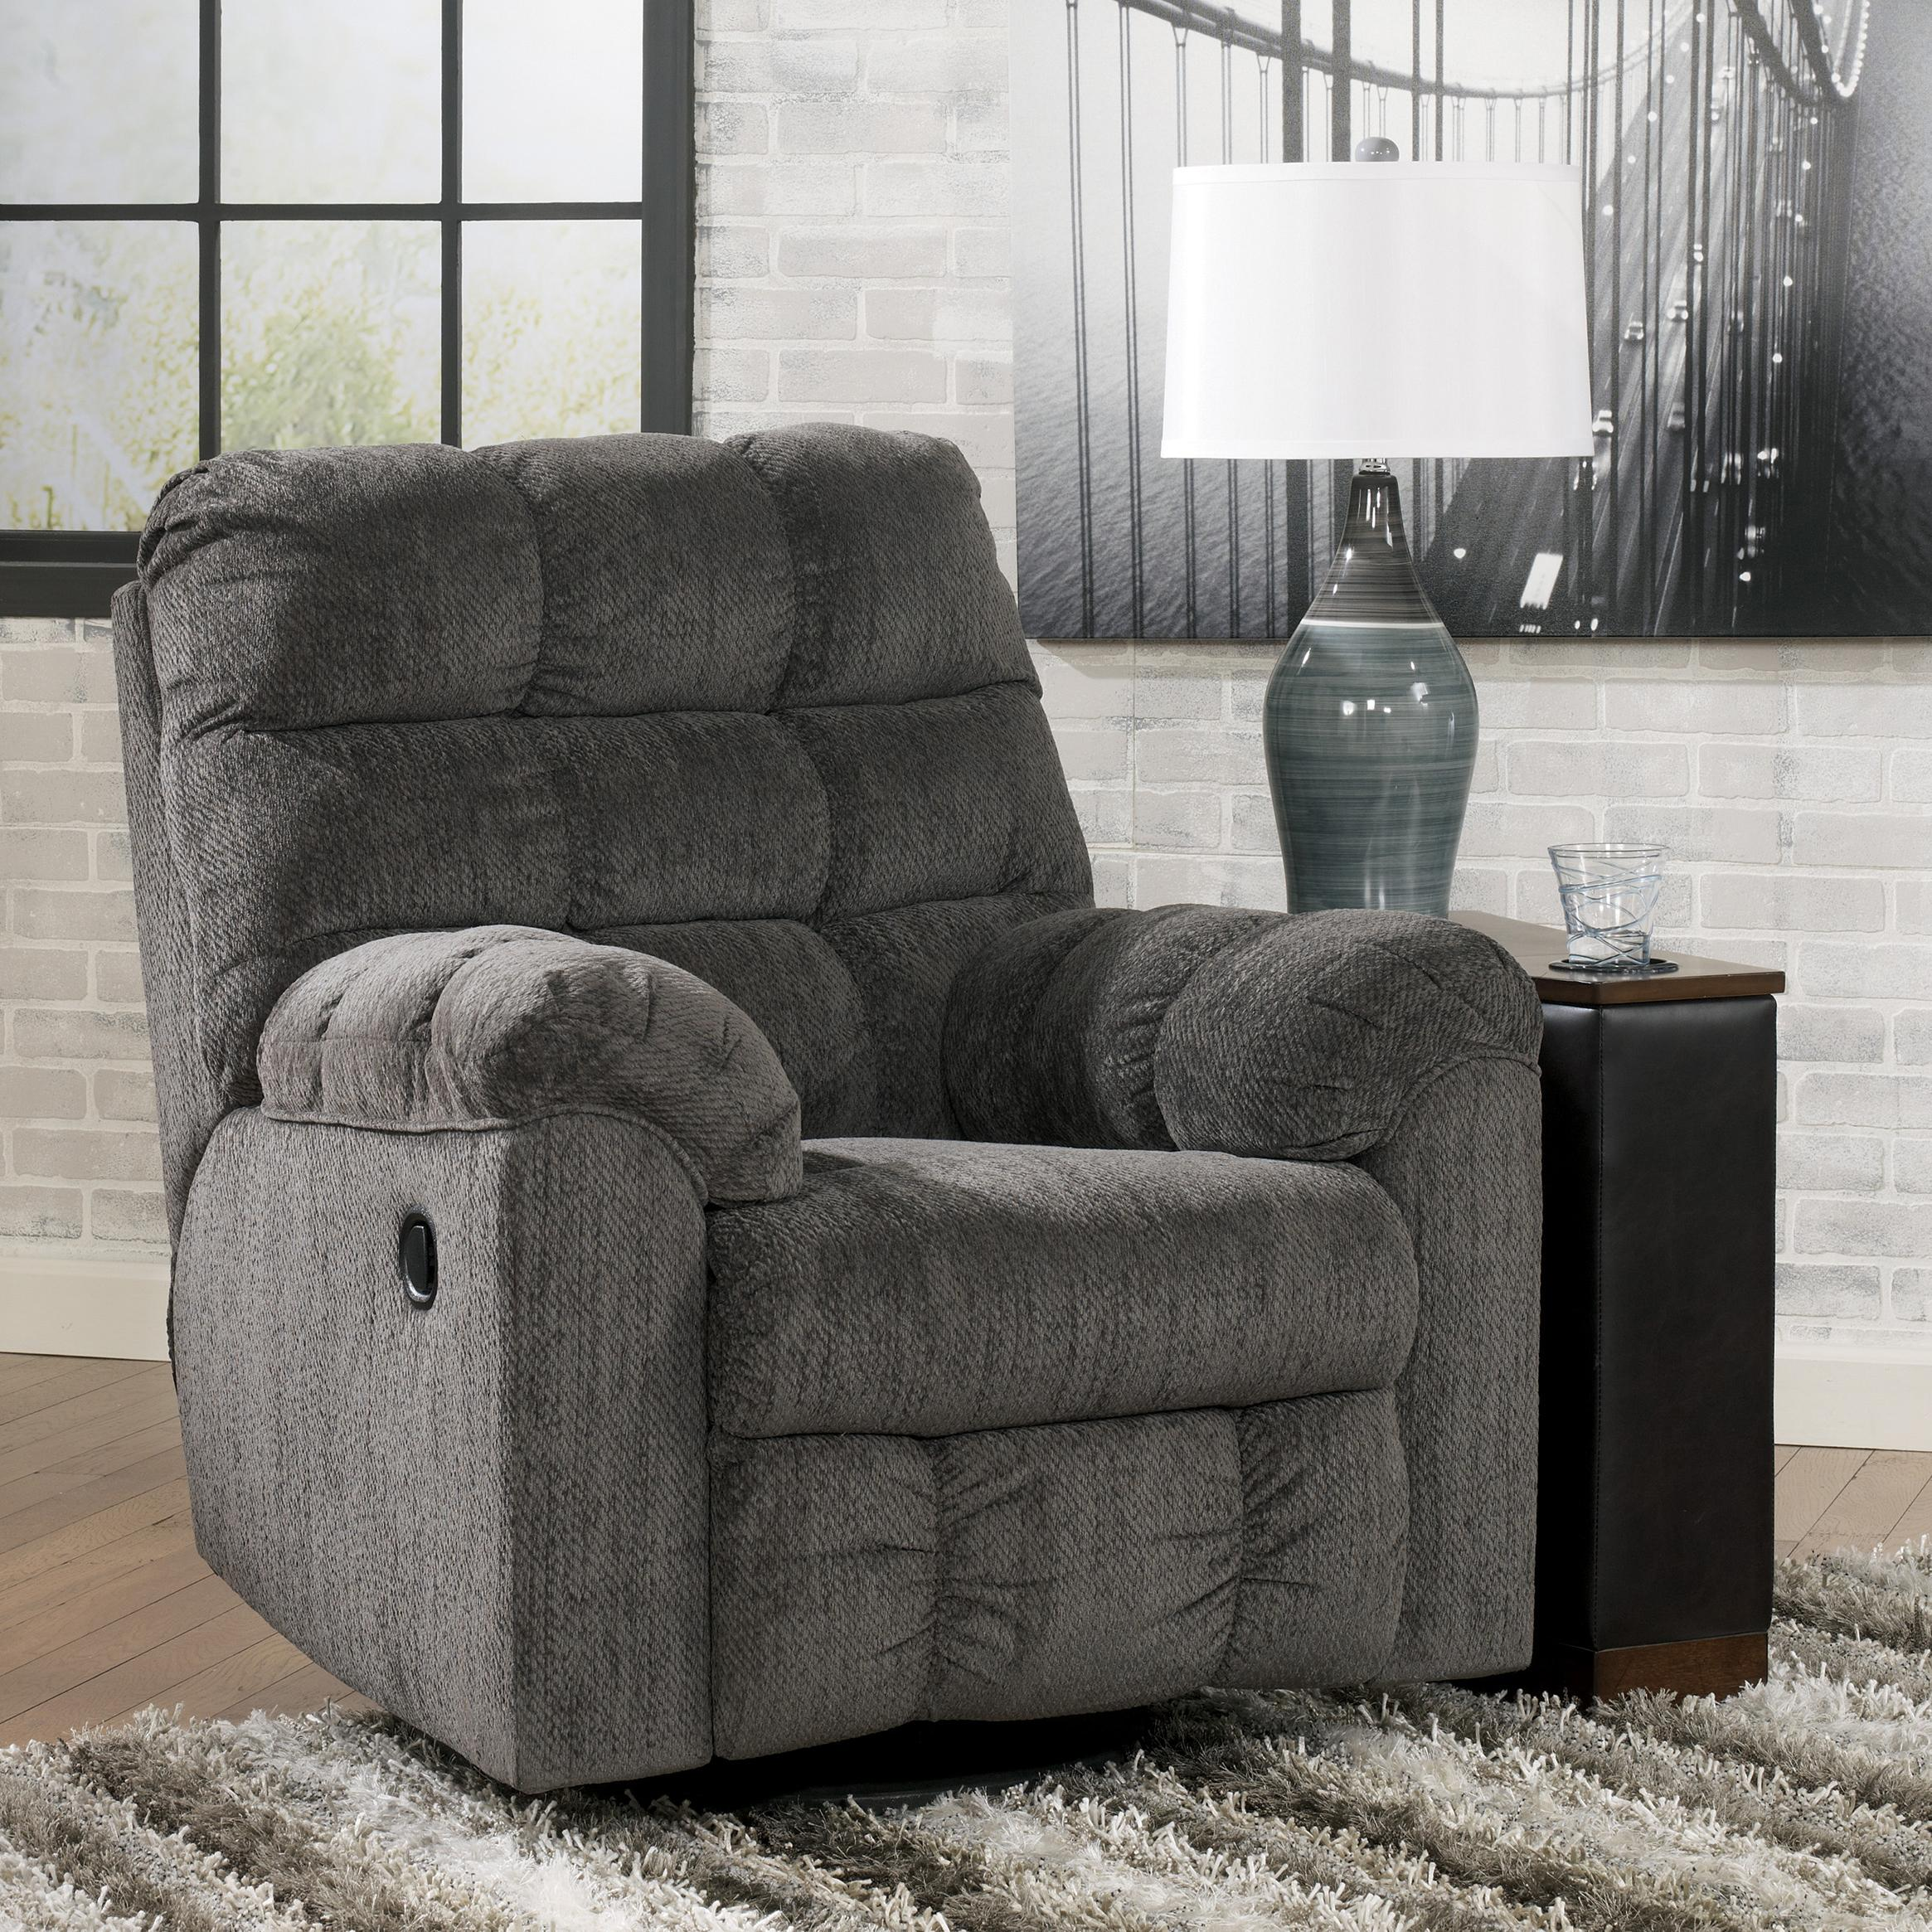 Acieona - Slate Swivel Rocker Recliner by Signature Design by Ashley at Northeast Factory Direct